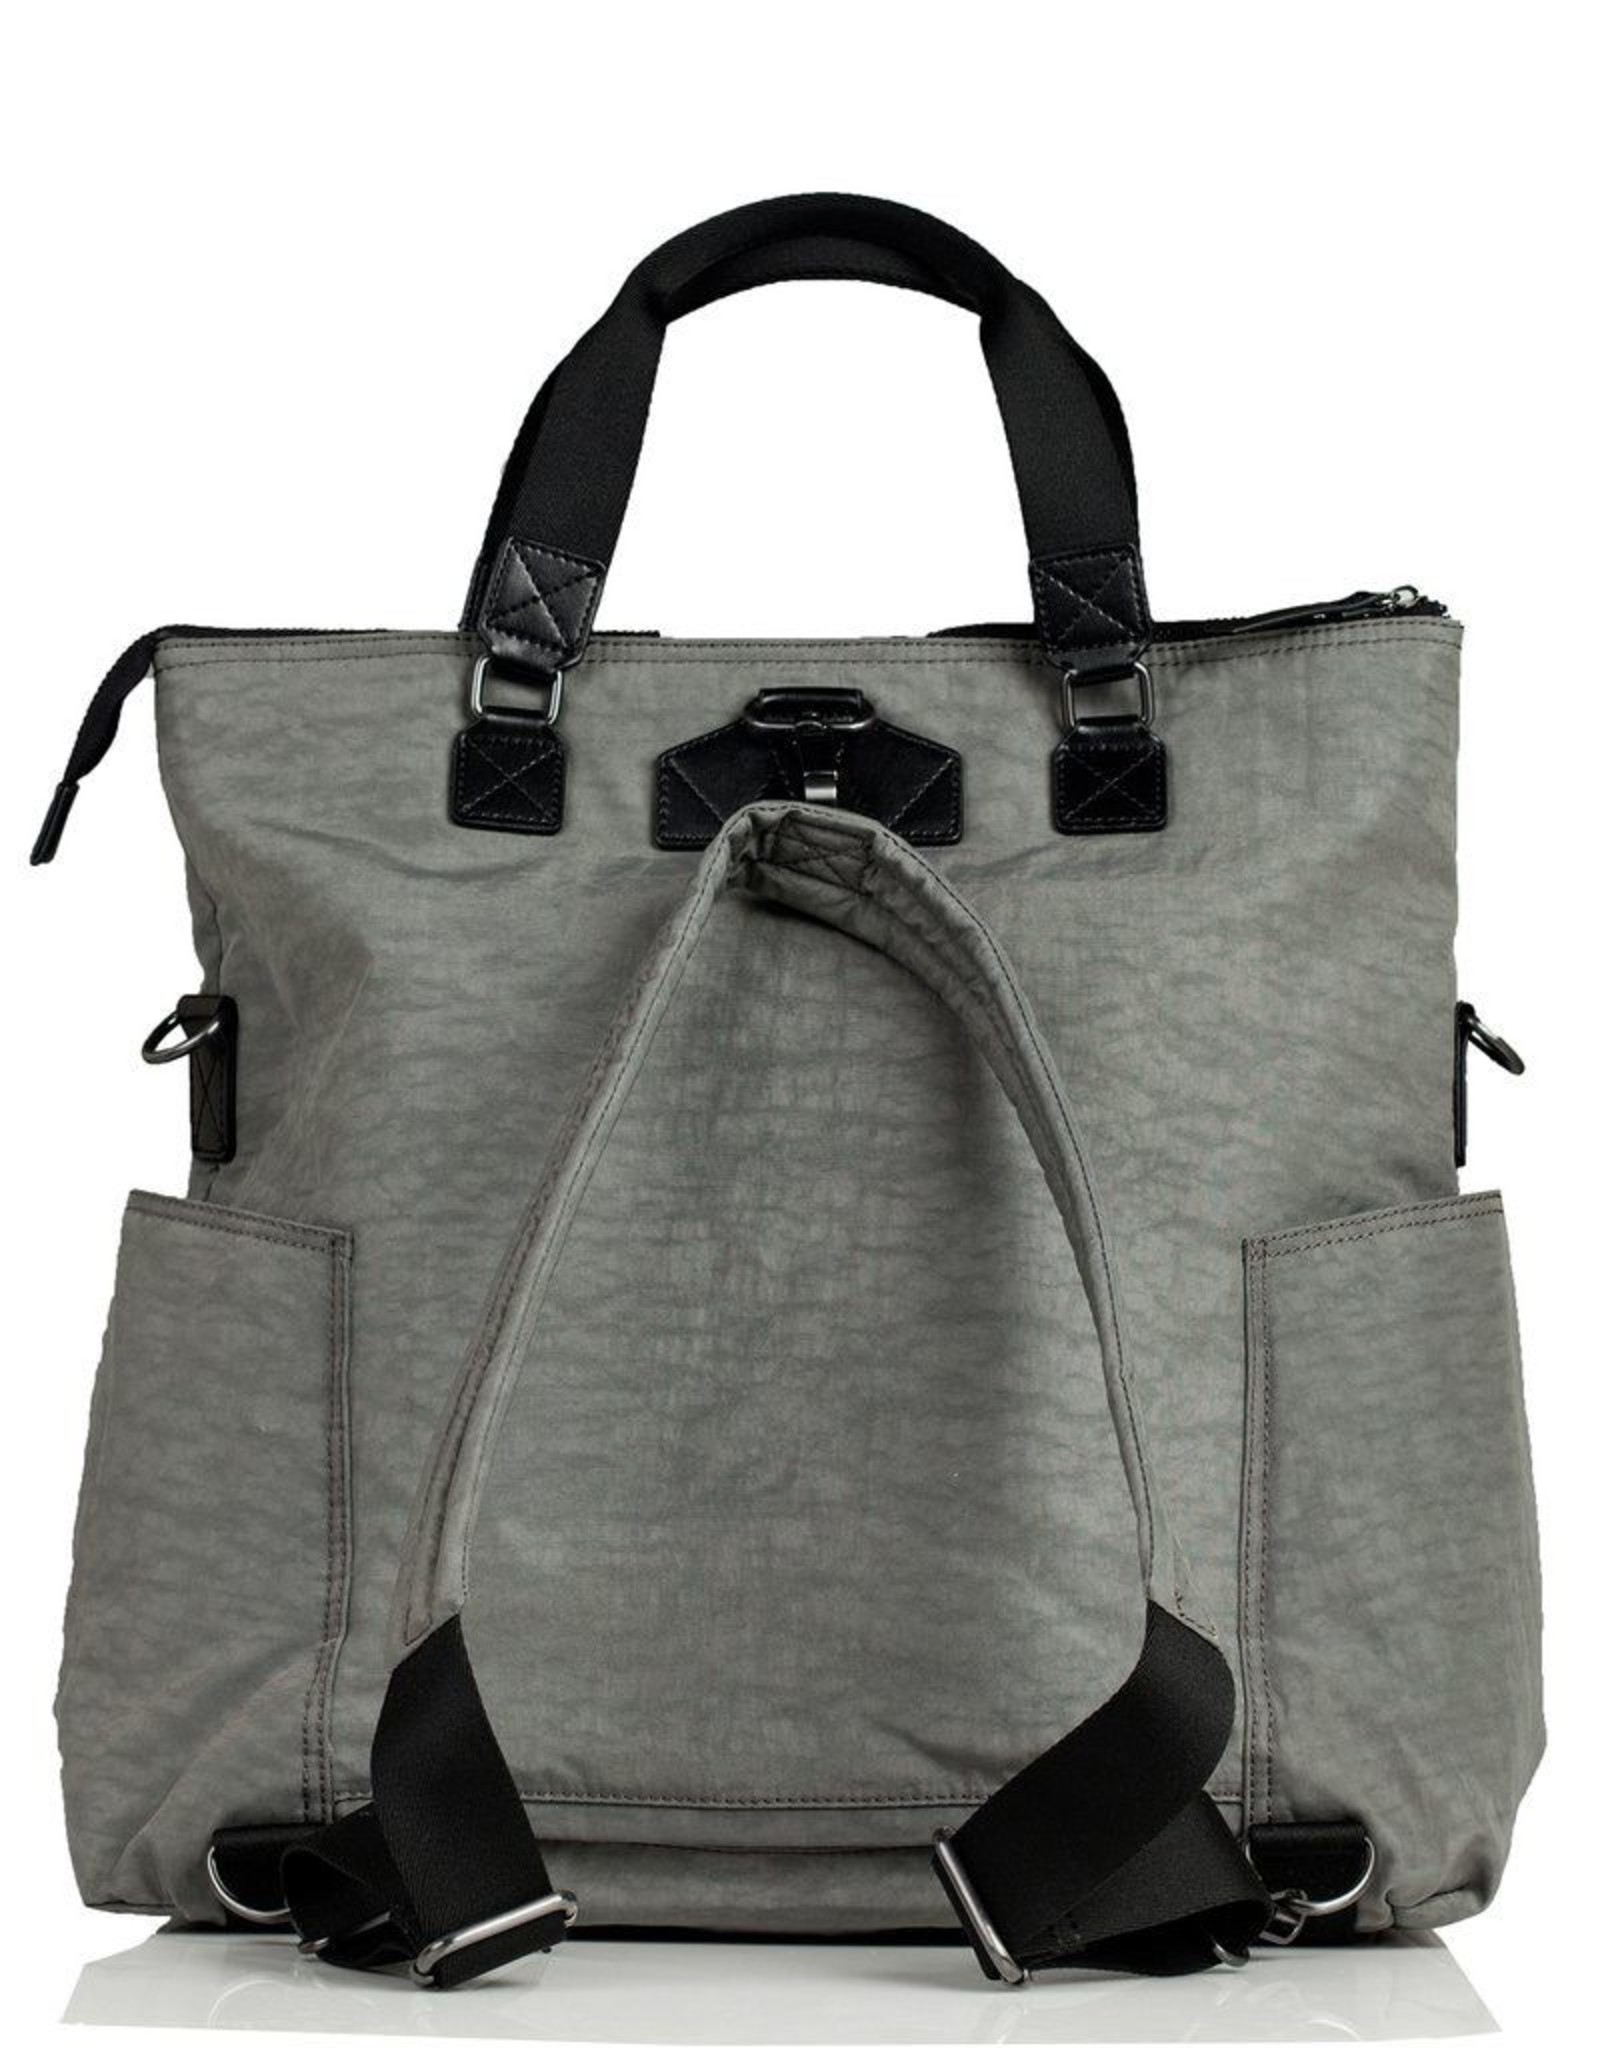 TWELVElittle Mini-Go Backpack